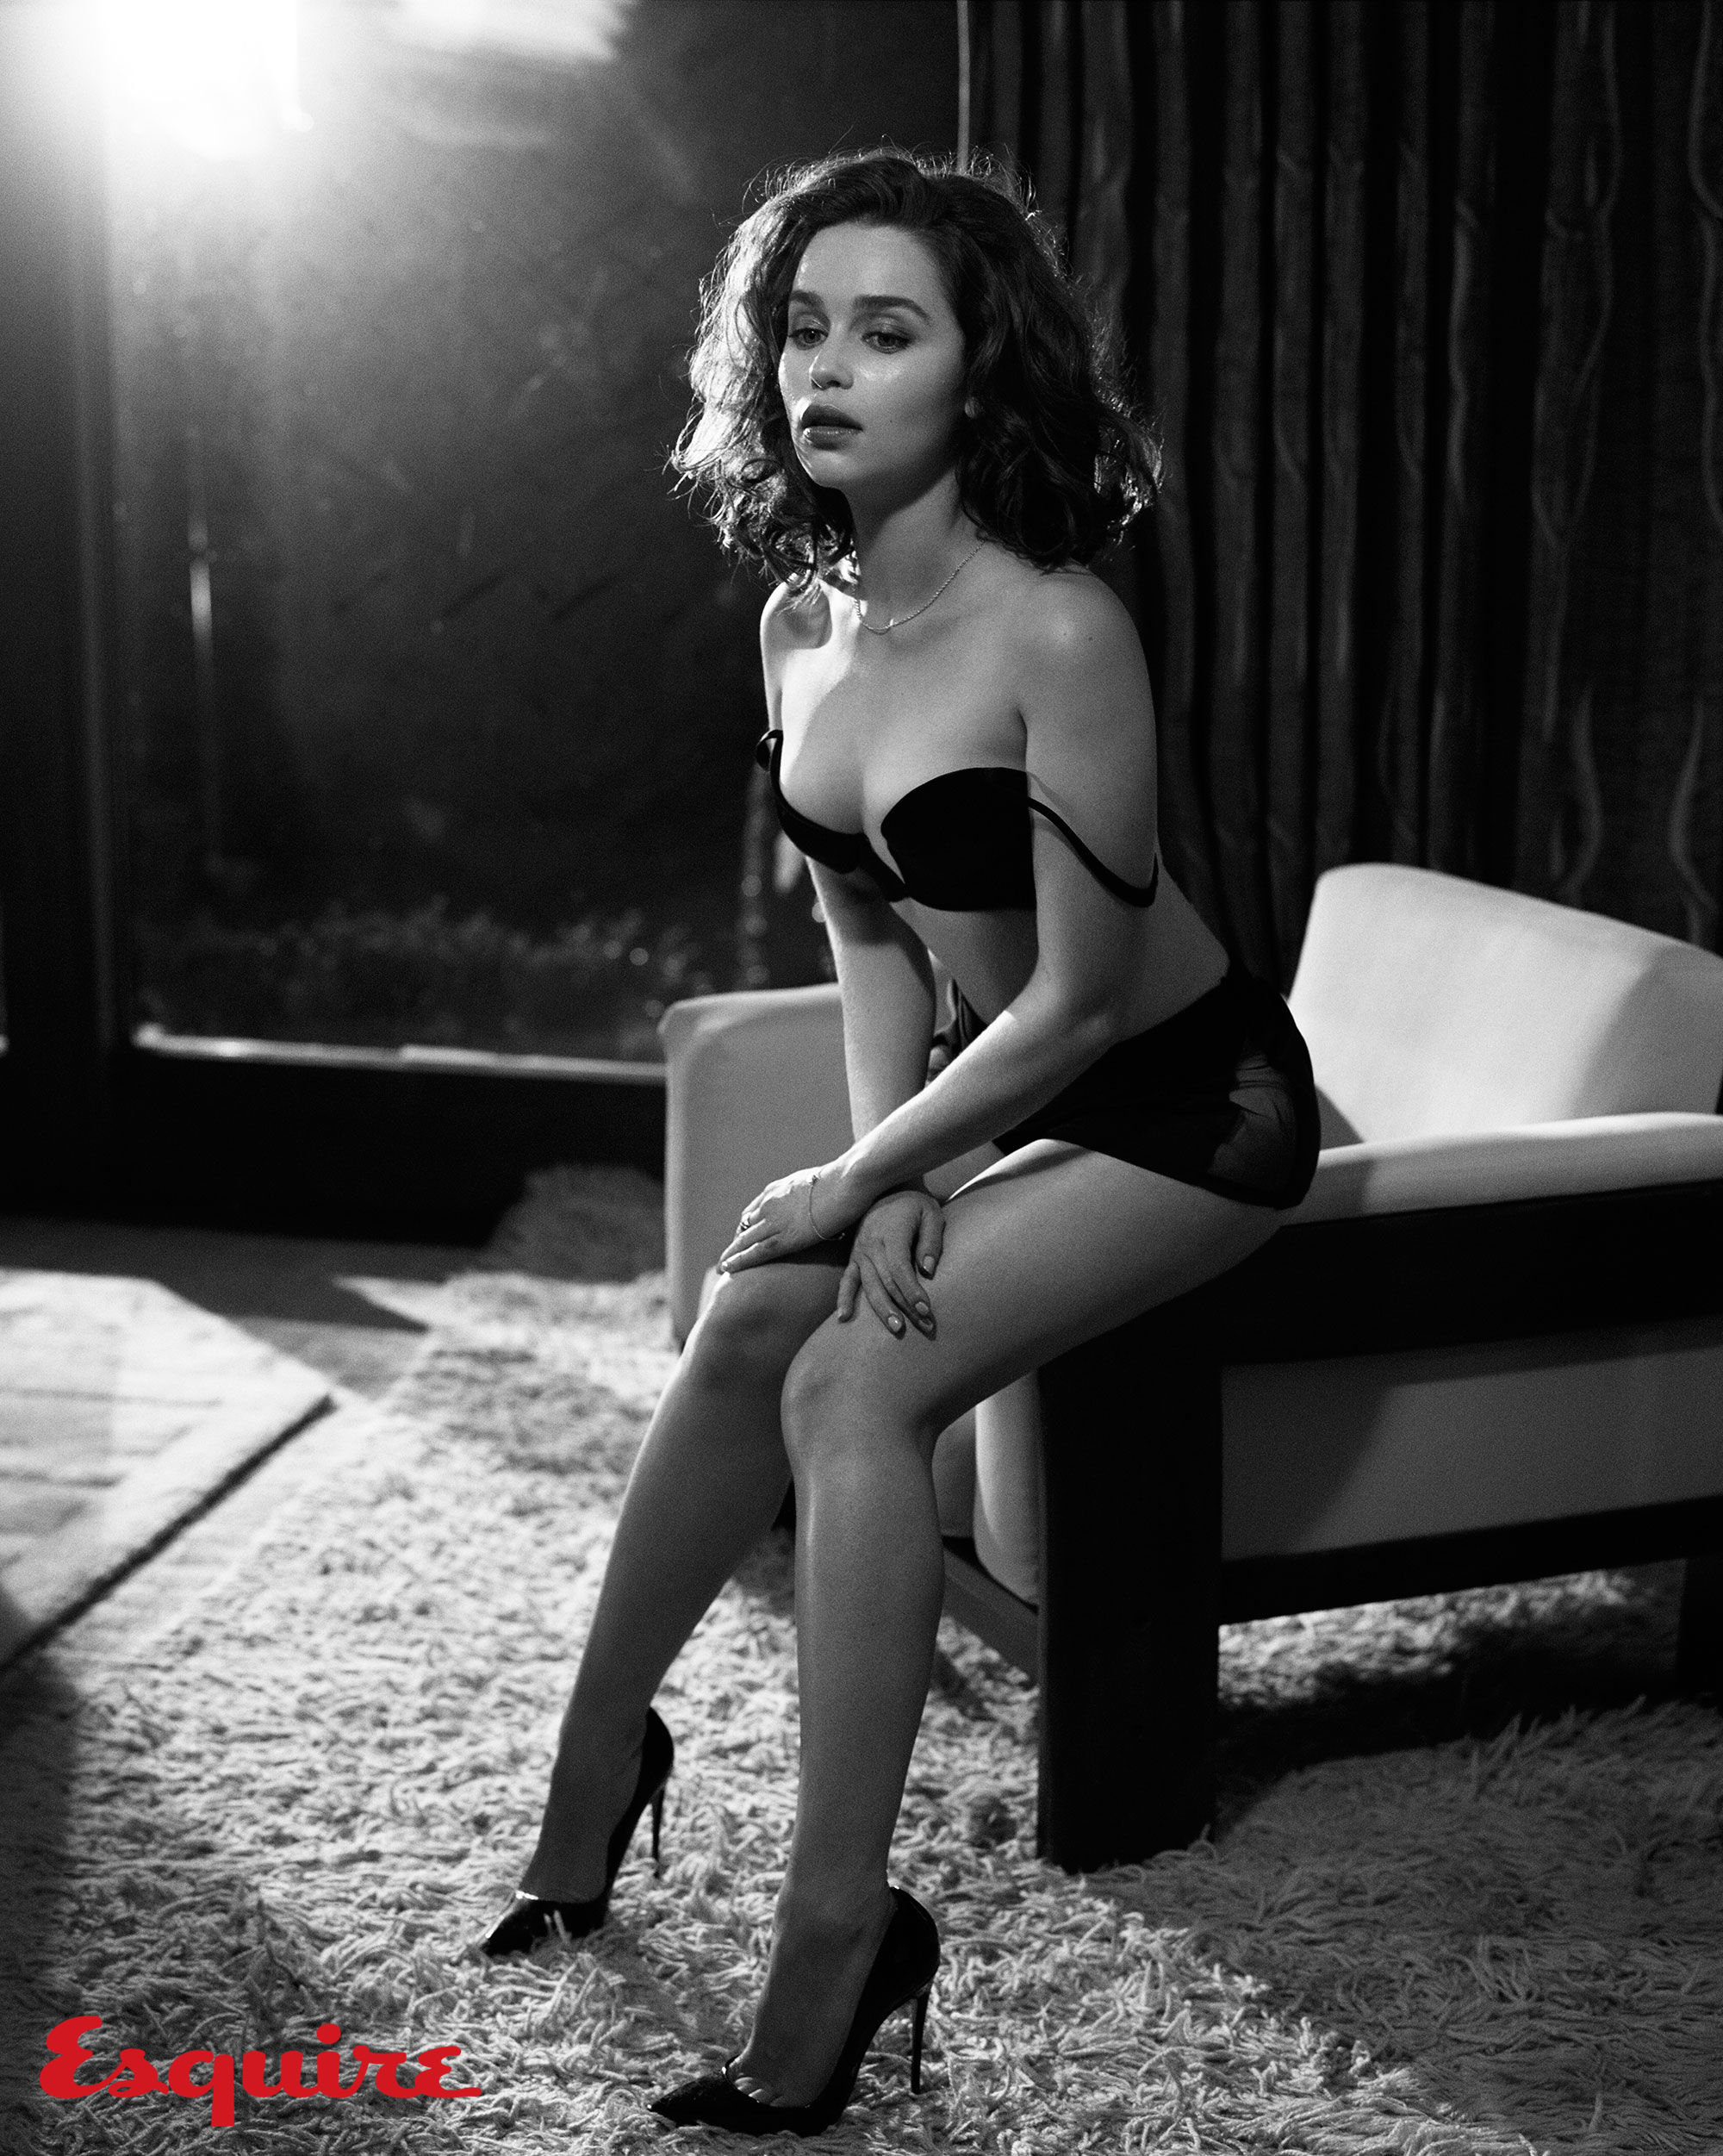 HIGH RES Esquire emilia-clarke-sexiest-woman-alive-2015